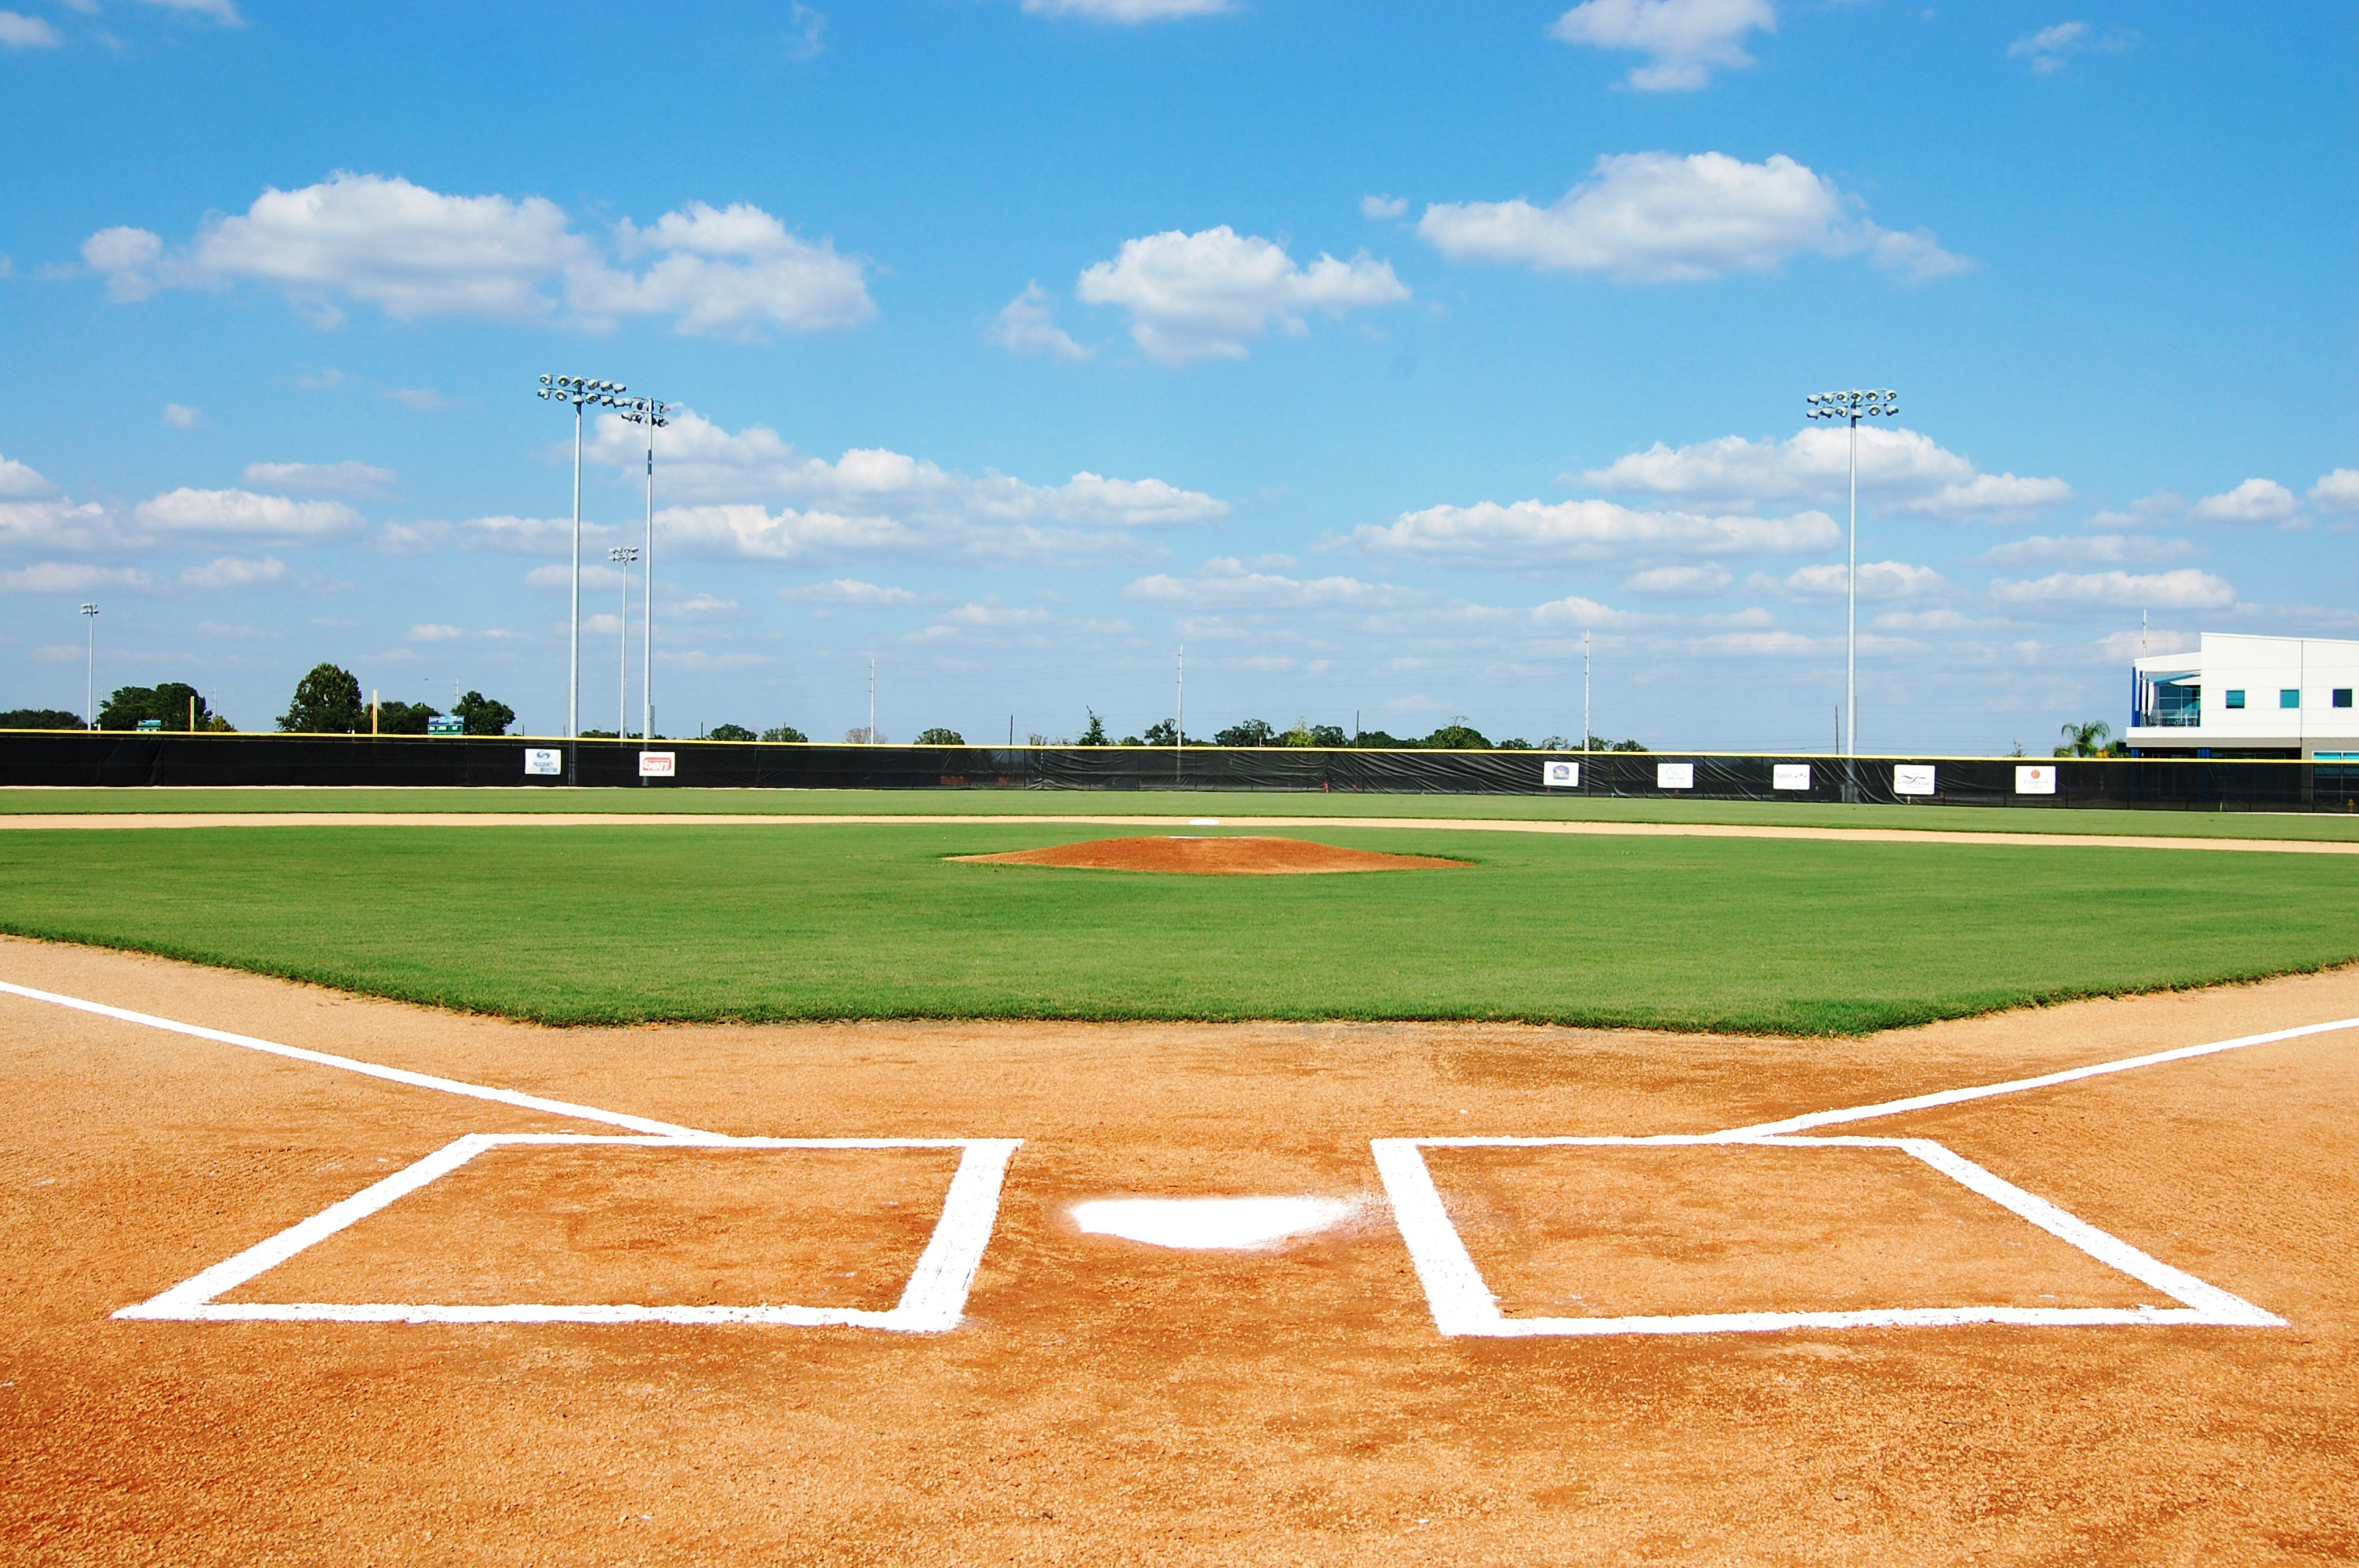 baseball field wallpaper